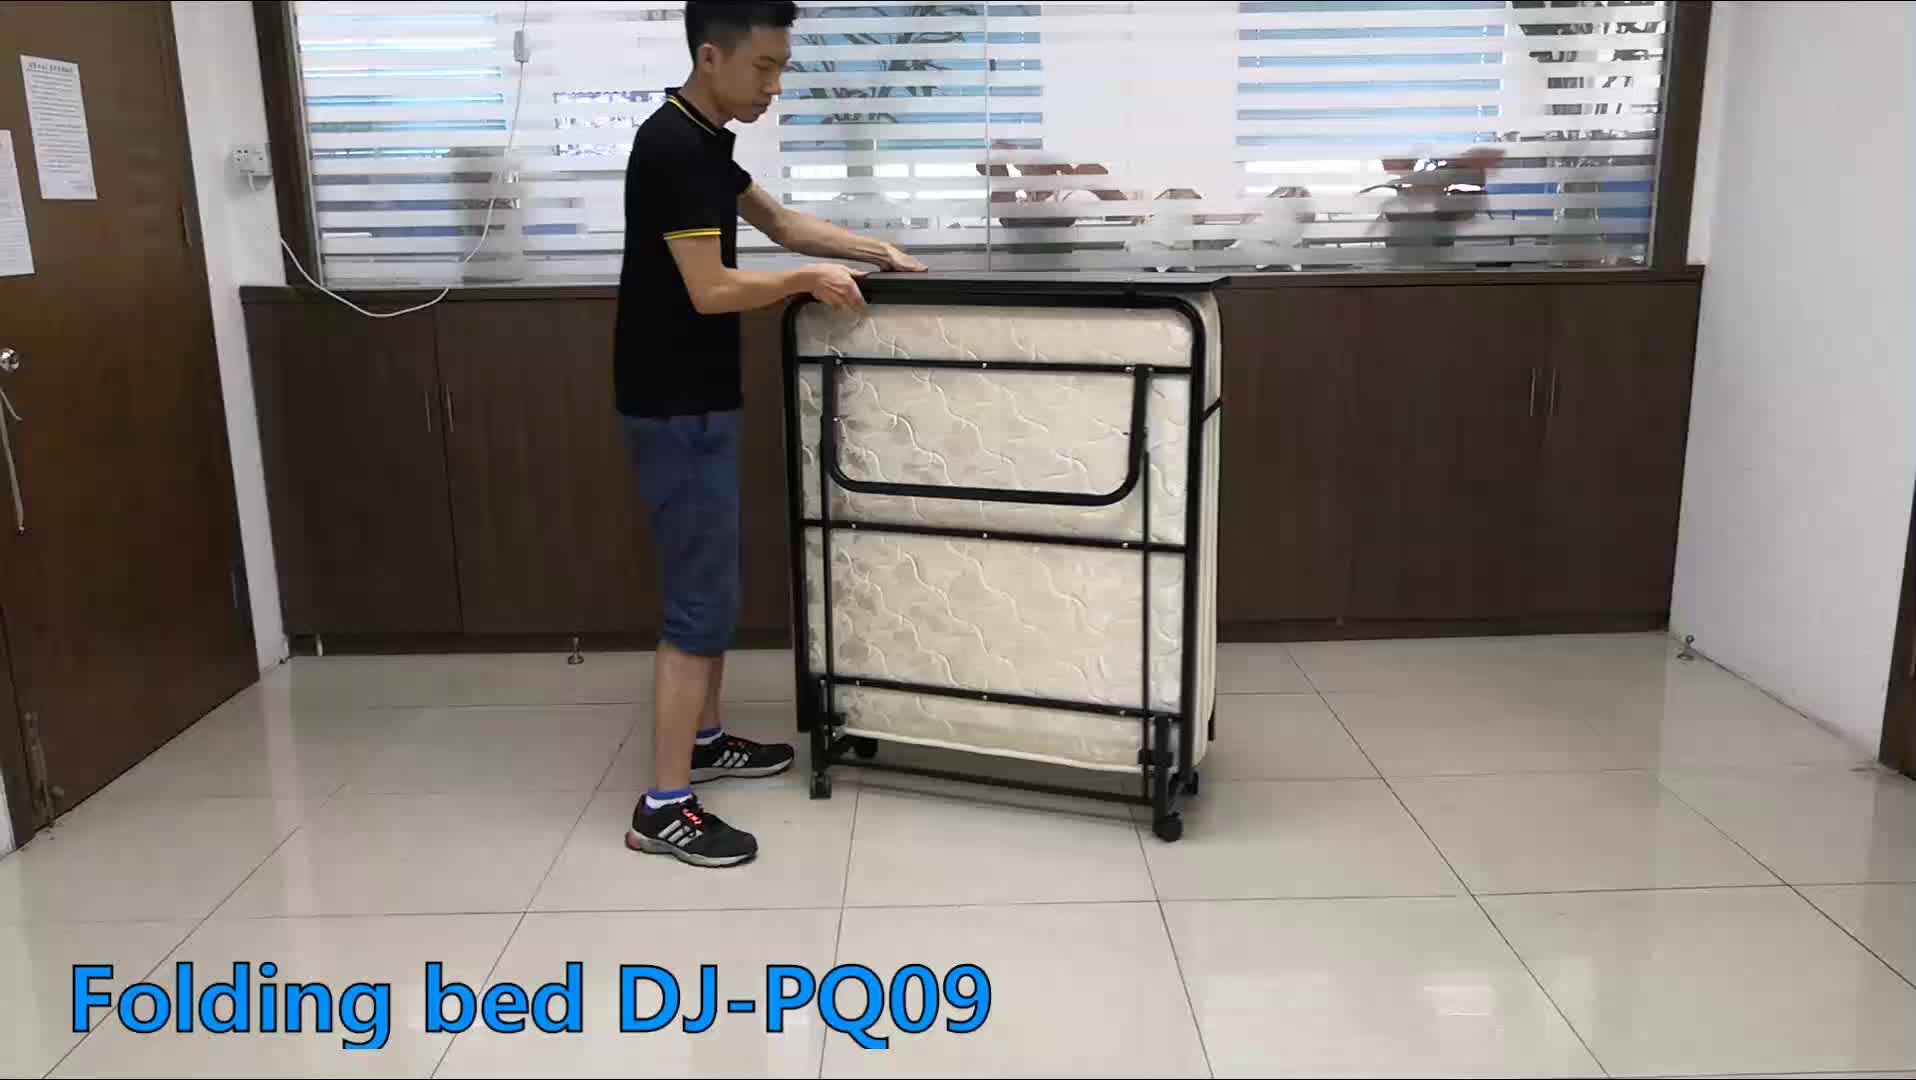 space saving movable metal bed folding cot with mattress and headboard metal folding bed DJ-PQ09